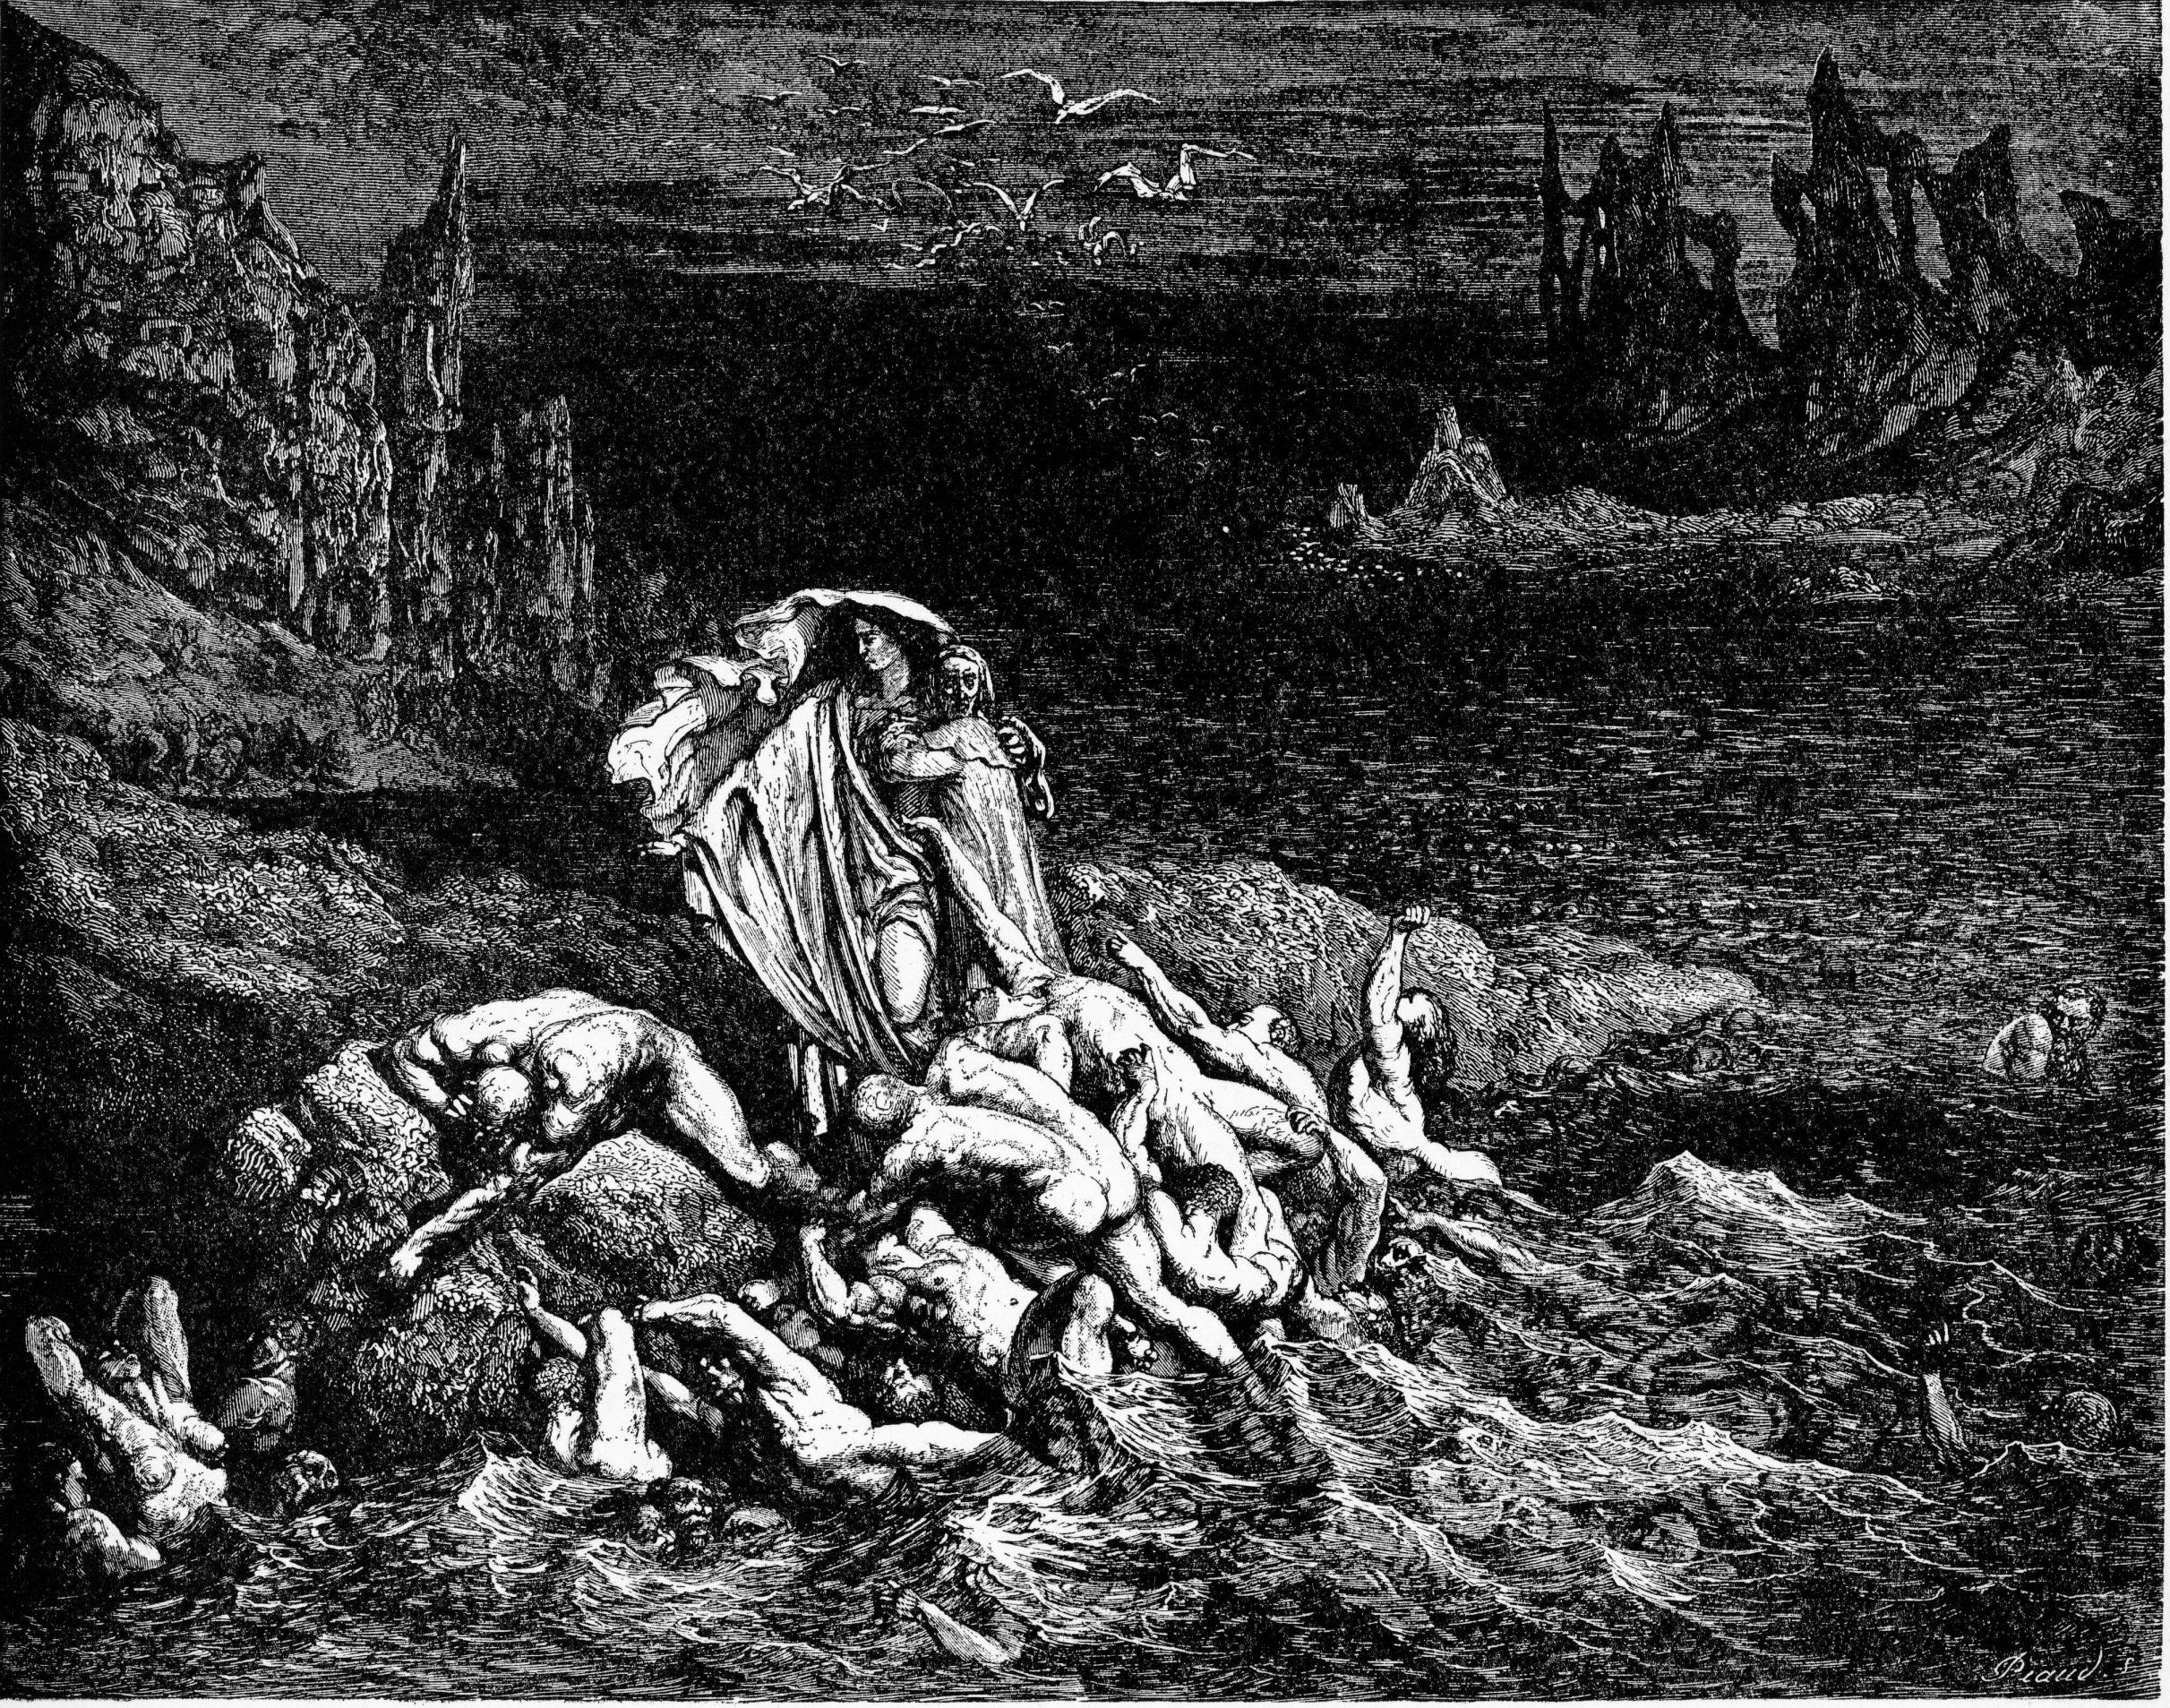 dante s inferno writework high resolution scan of engraving by gustave dore illustrating canto vii of divine comedy inferno